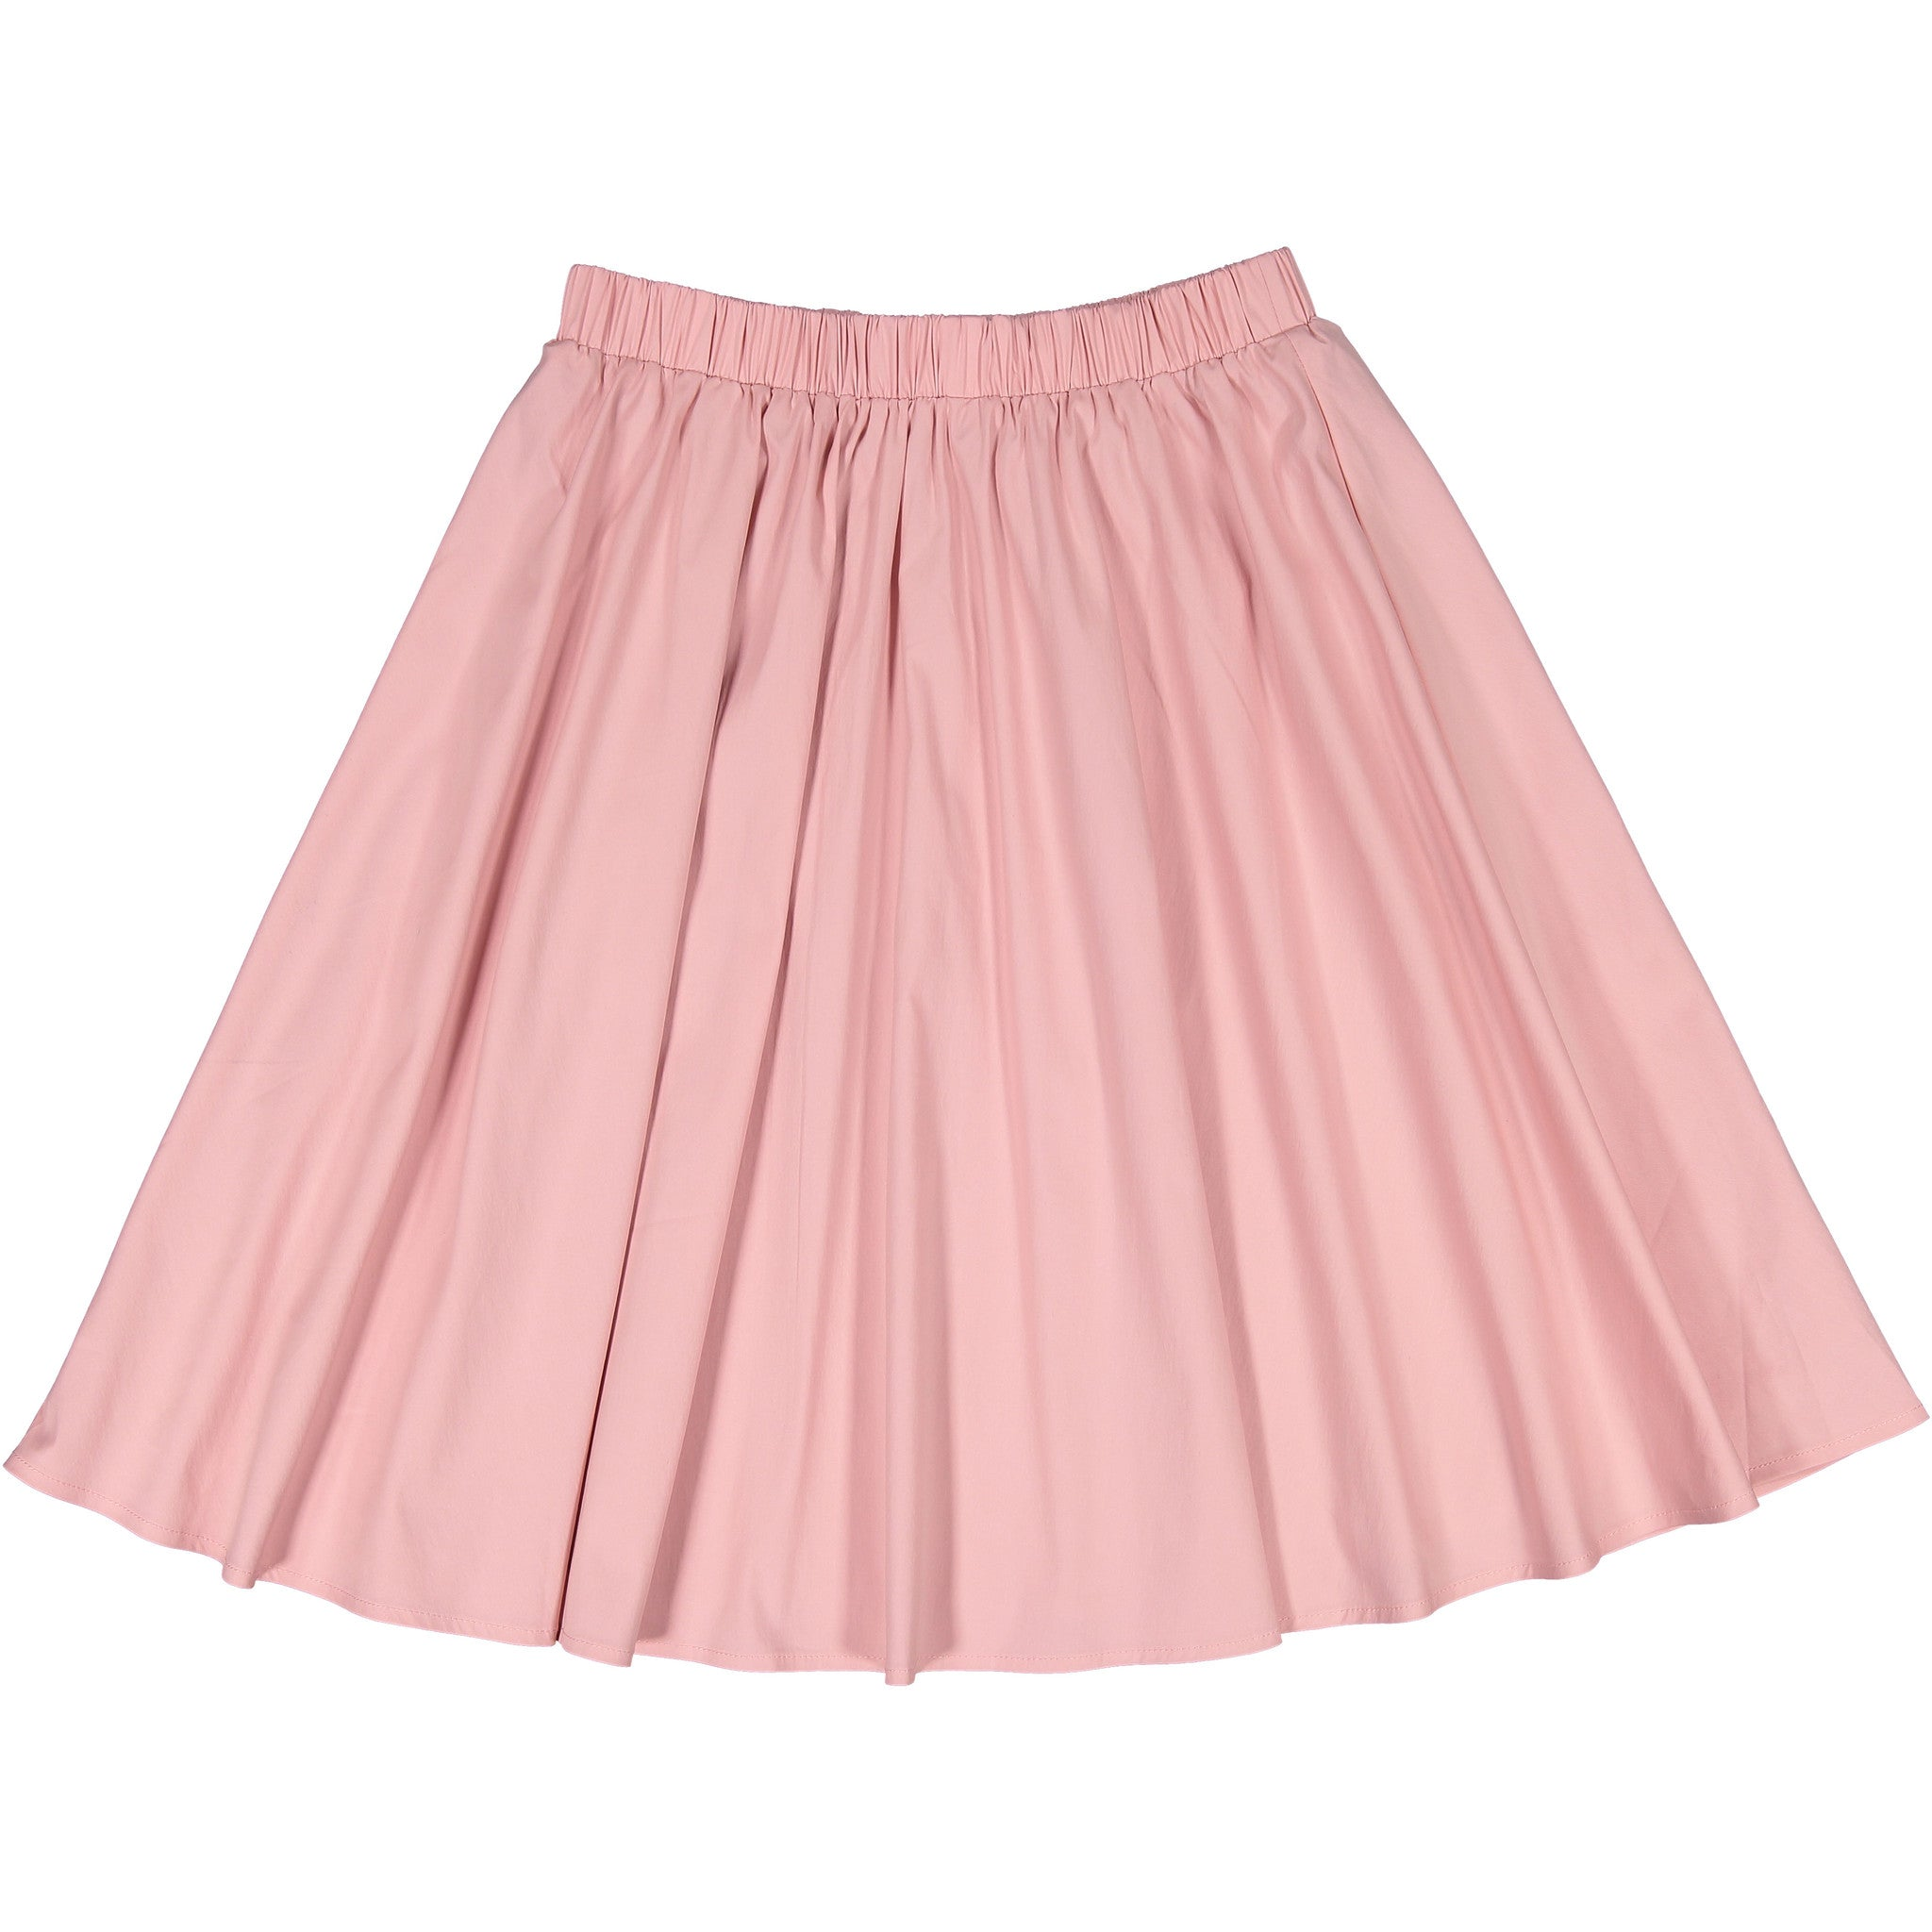 Ava & Lu The Pink Lifeboat Skirt